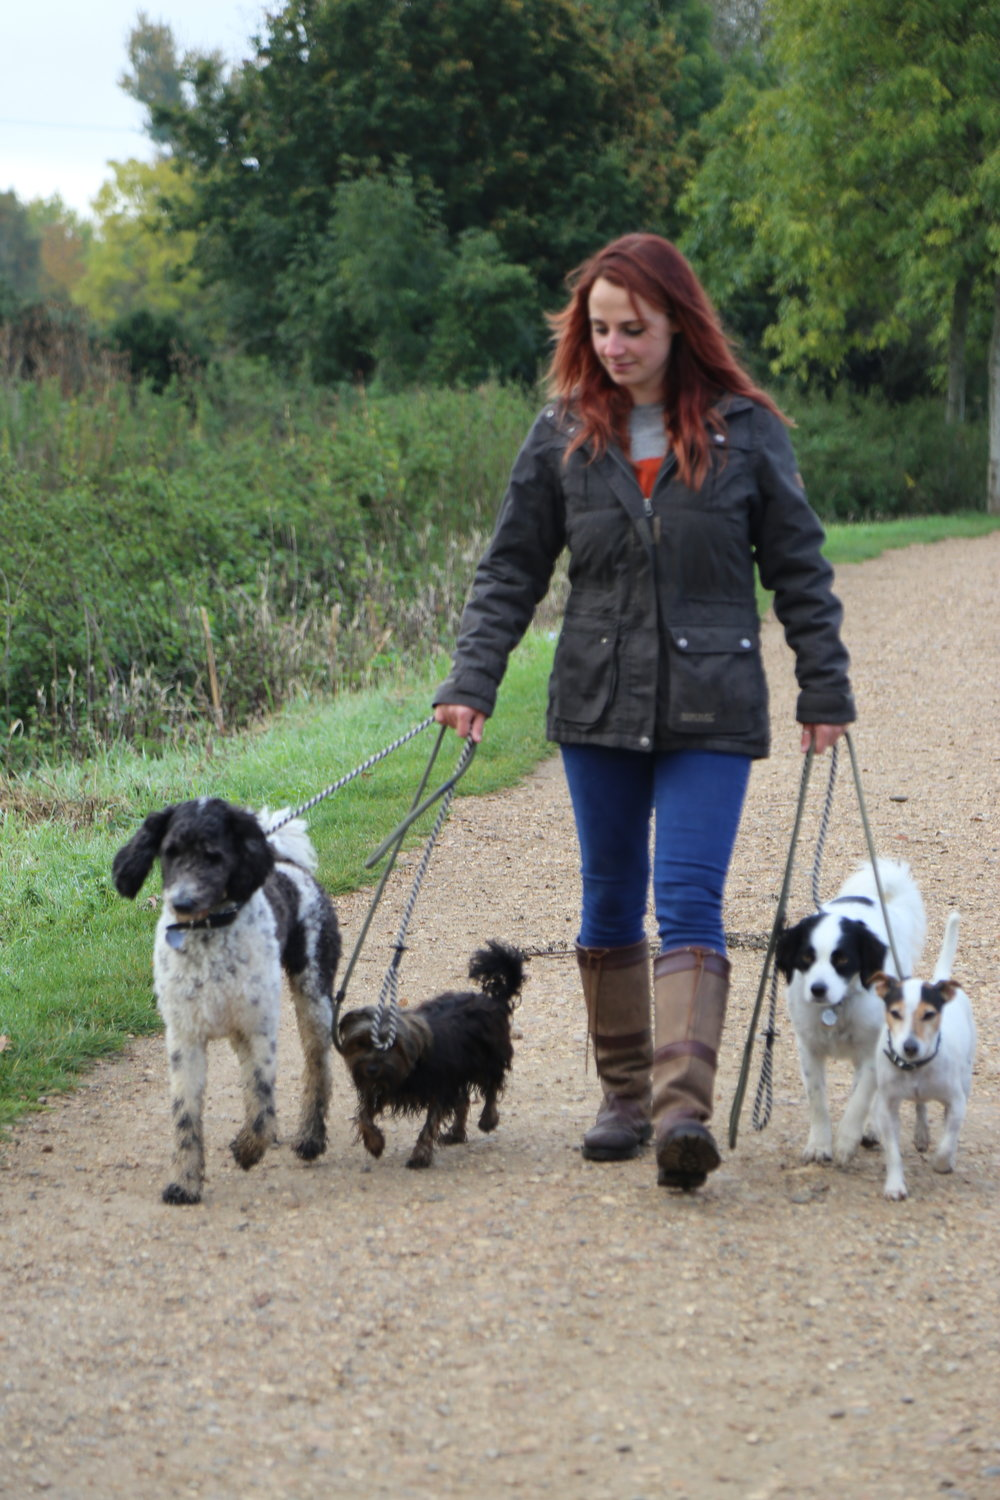 Group dog walk